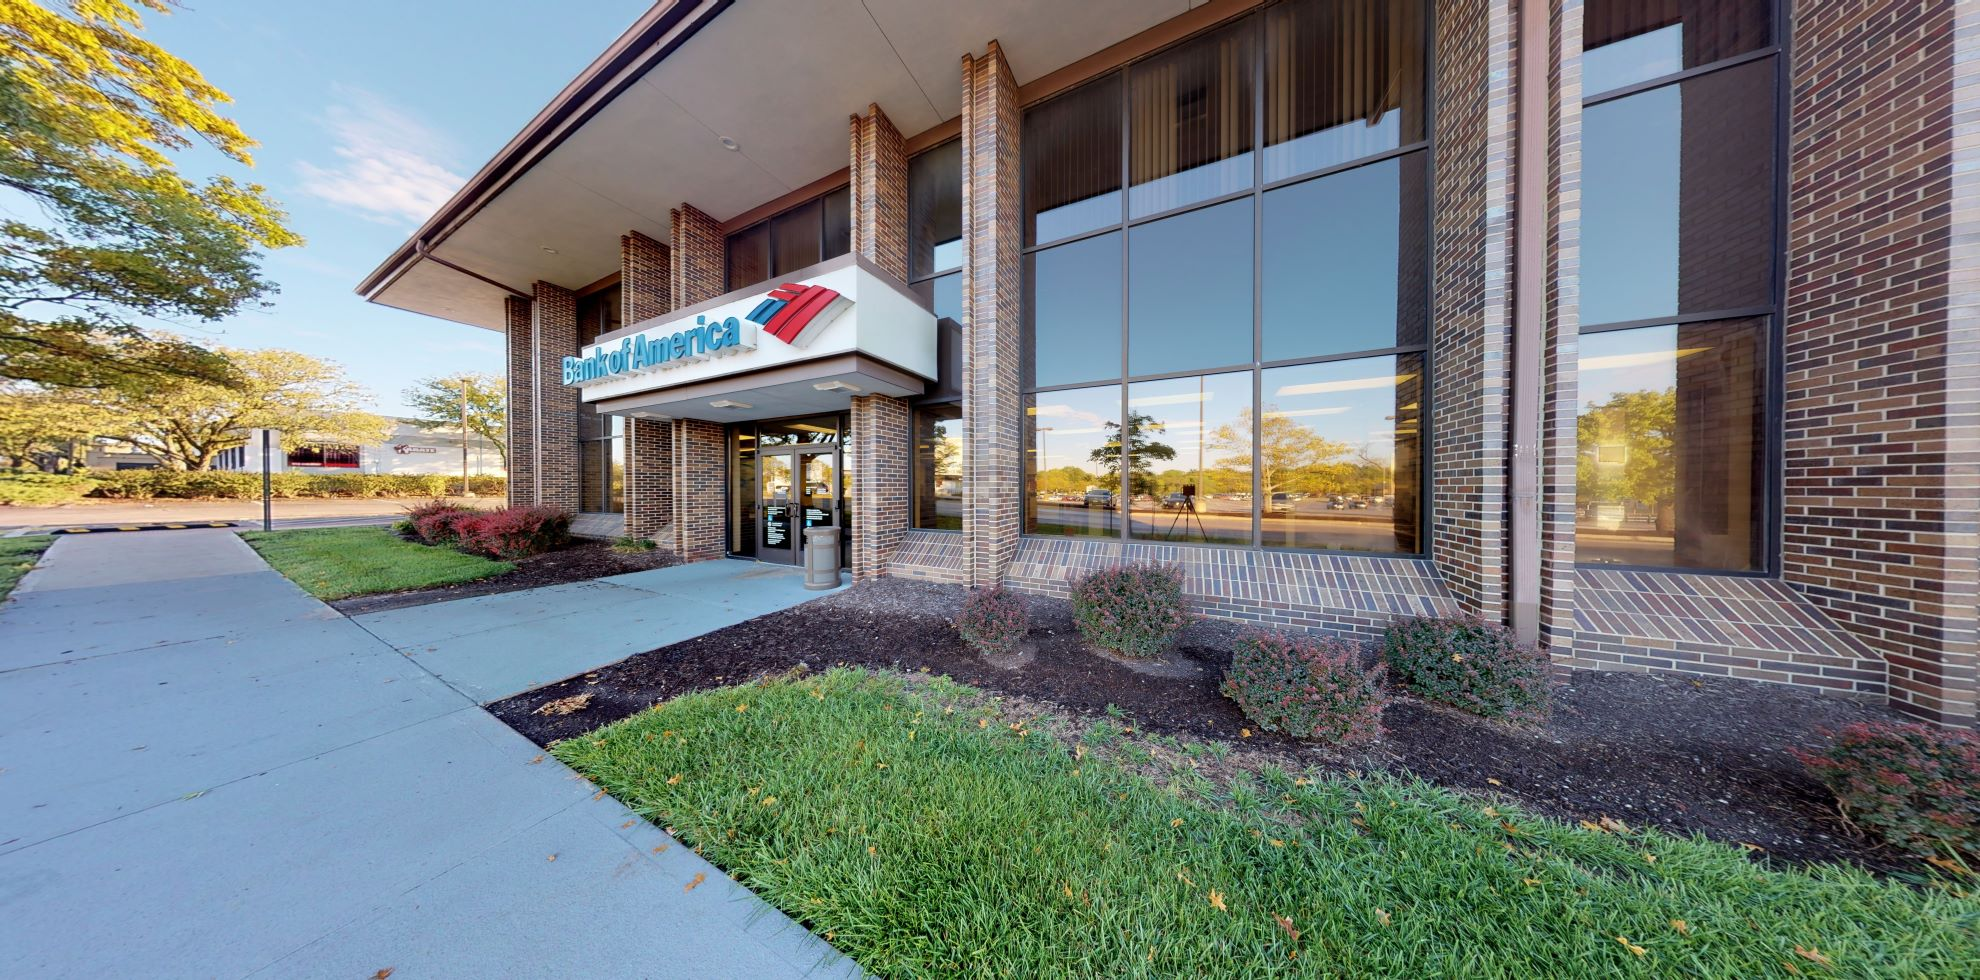 Bank of America financial center with drive-thru ATM | 9550 Metcalf Ave, Overland Park, KS 66212